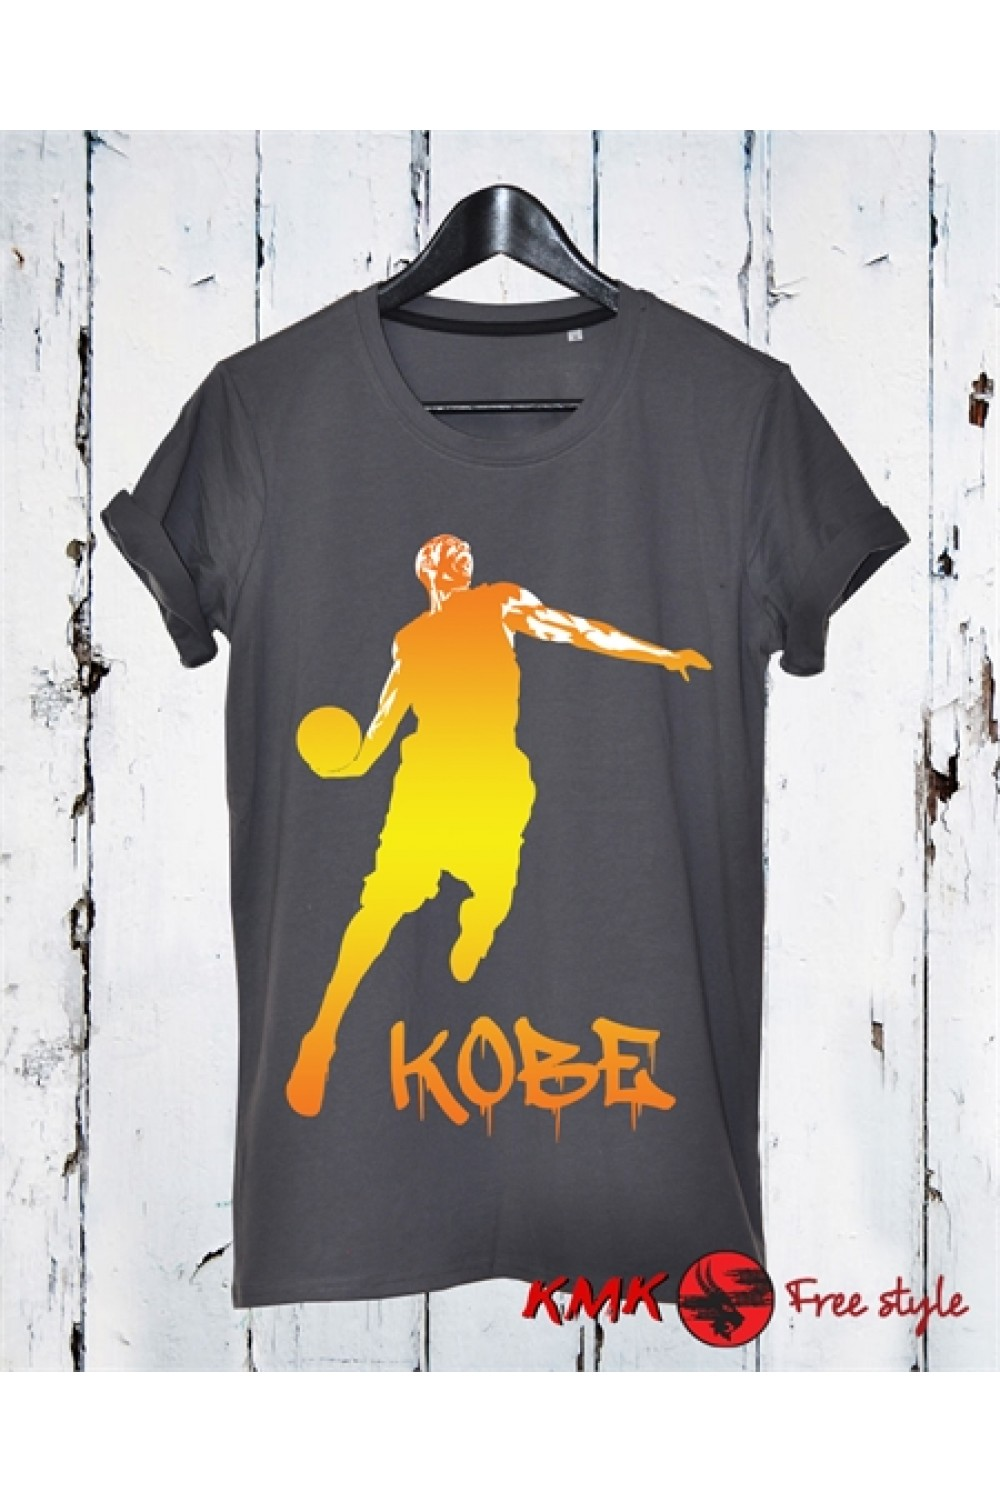 Kobe Printed T shirt | Basketball Tee | Kobe T-shirt | Sports Tee